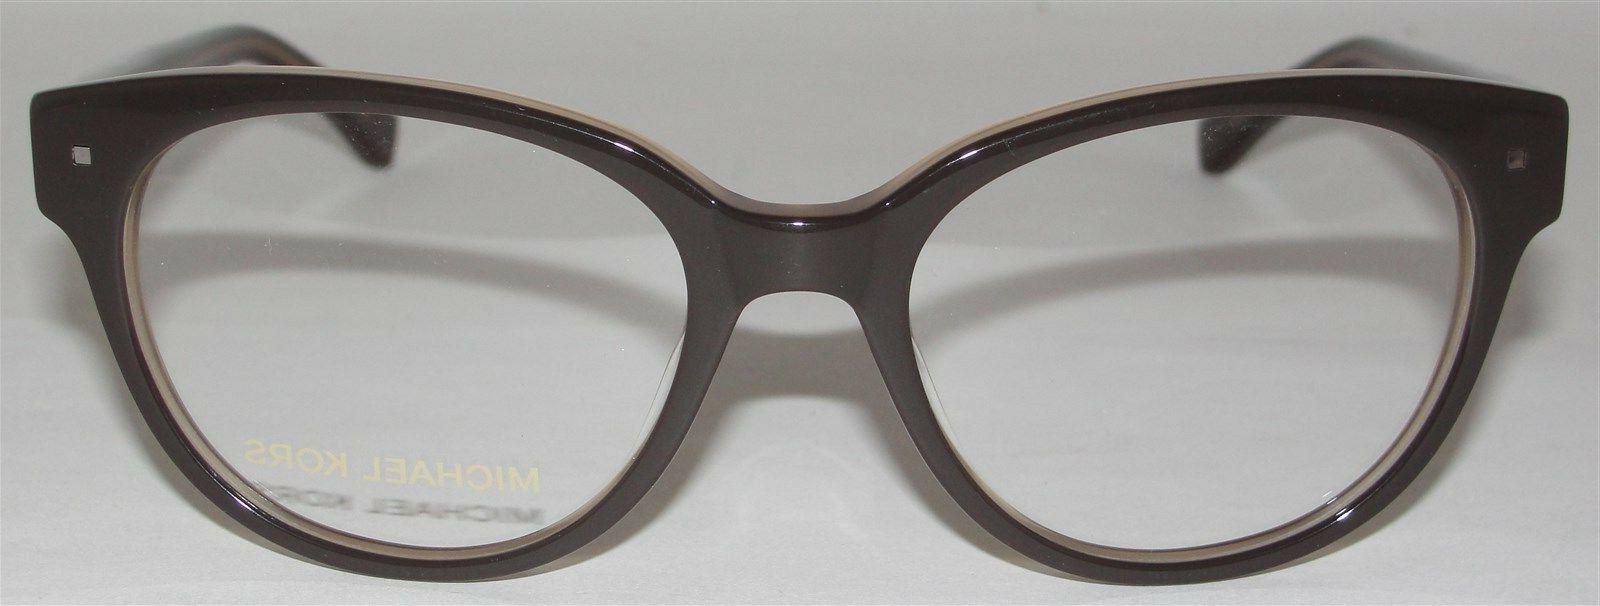 MICHAEL KORS Women's Glasses Eyeglasses MK289 200 Brown Fram